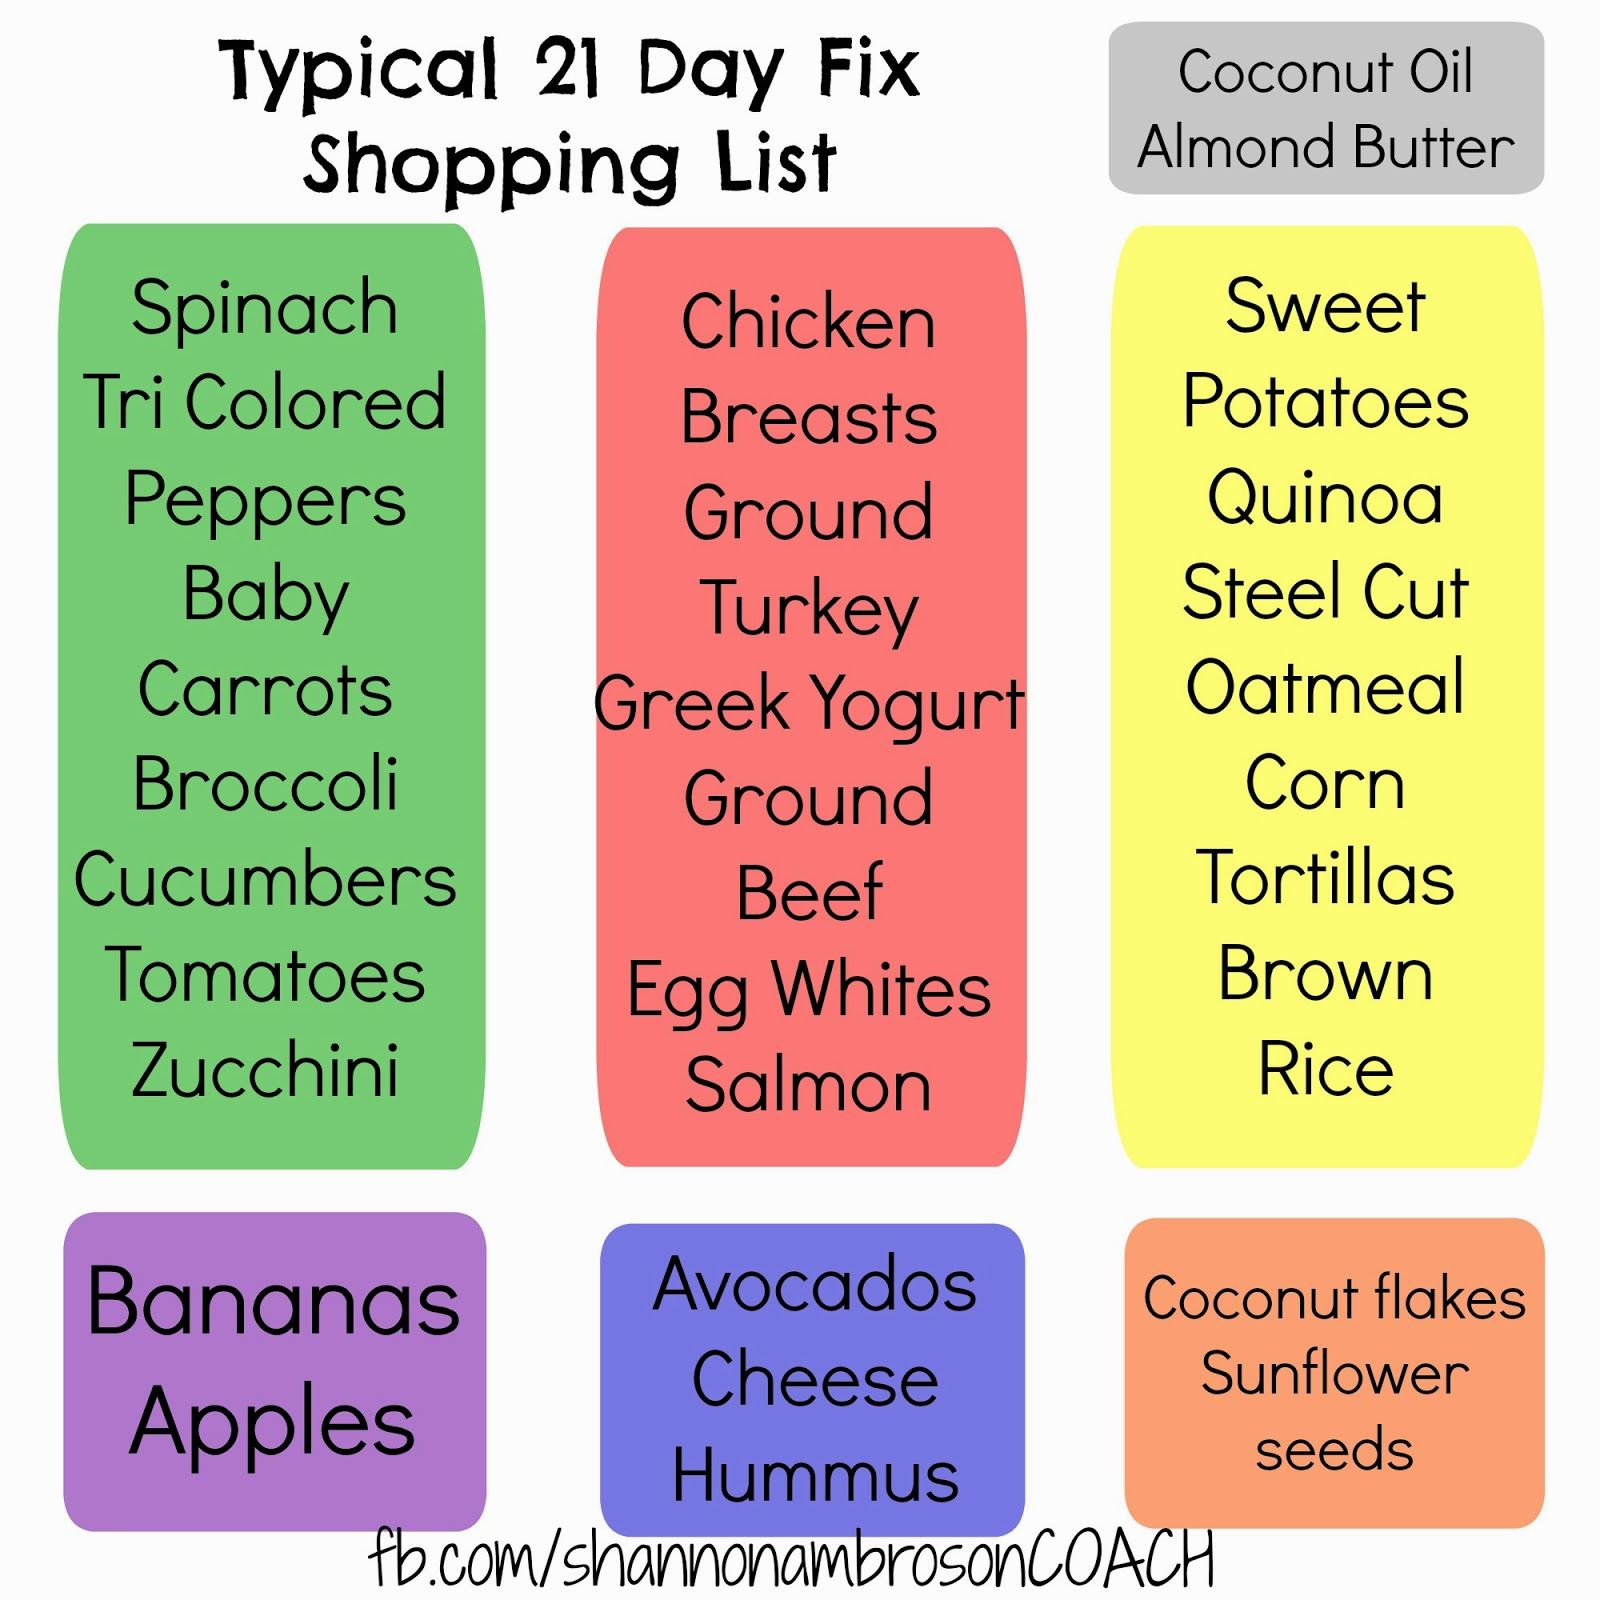 my typical 21 day fix approved shopping list  this is